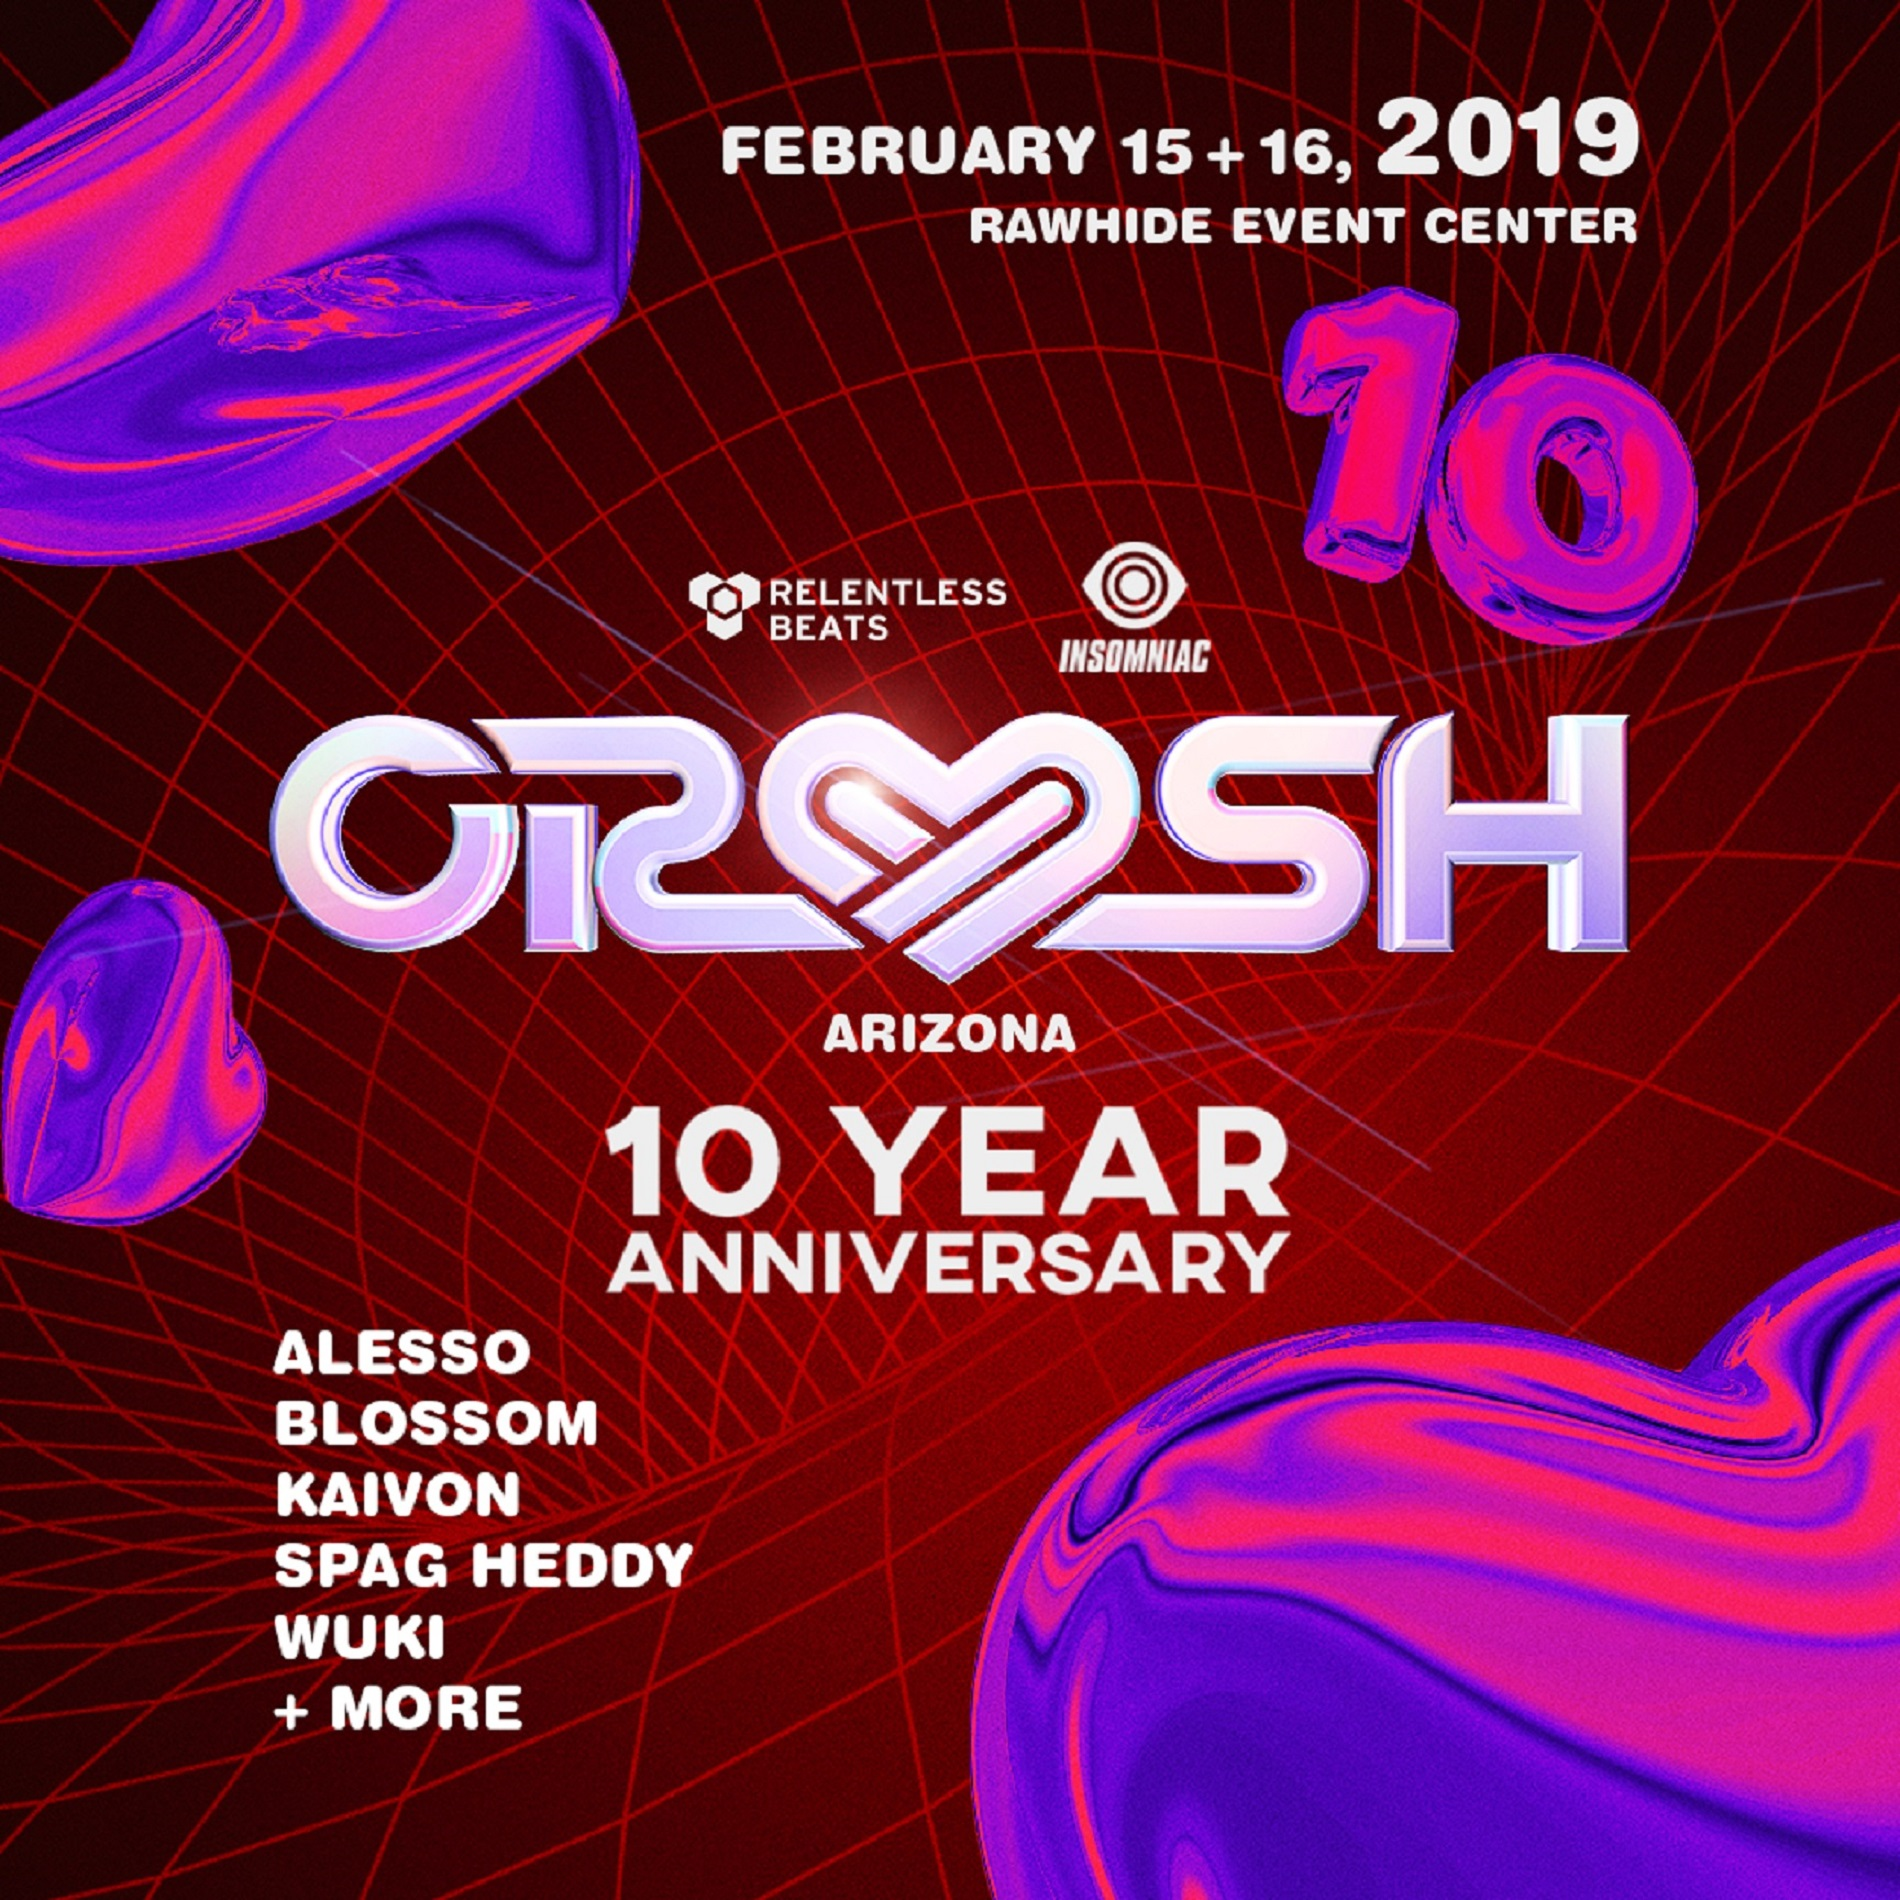 10TH ANNIVERSARY CRUSH ARIZONA EXPANDS TO TWO DAYS, FEBRUARY 15-16, 2019